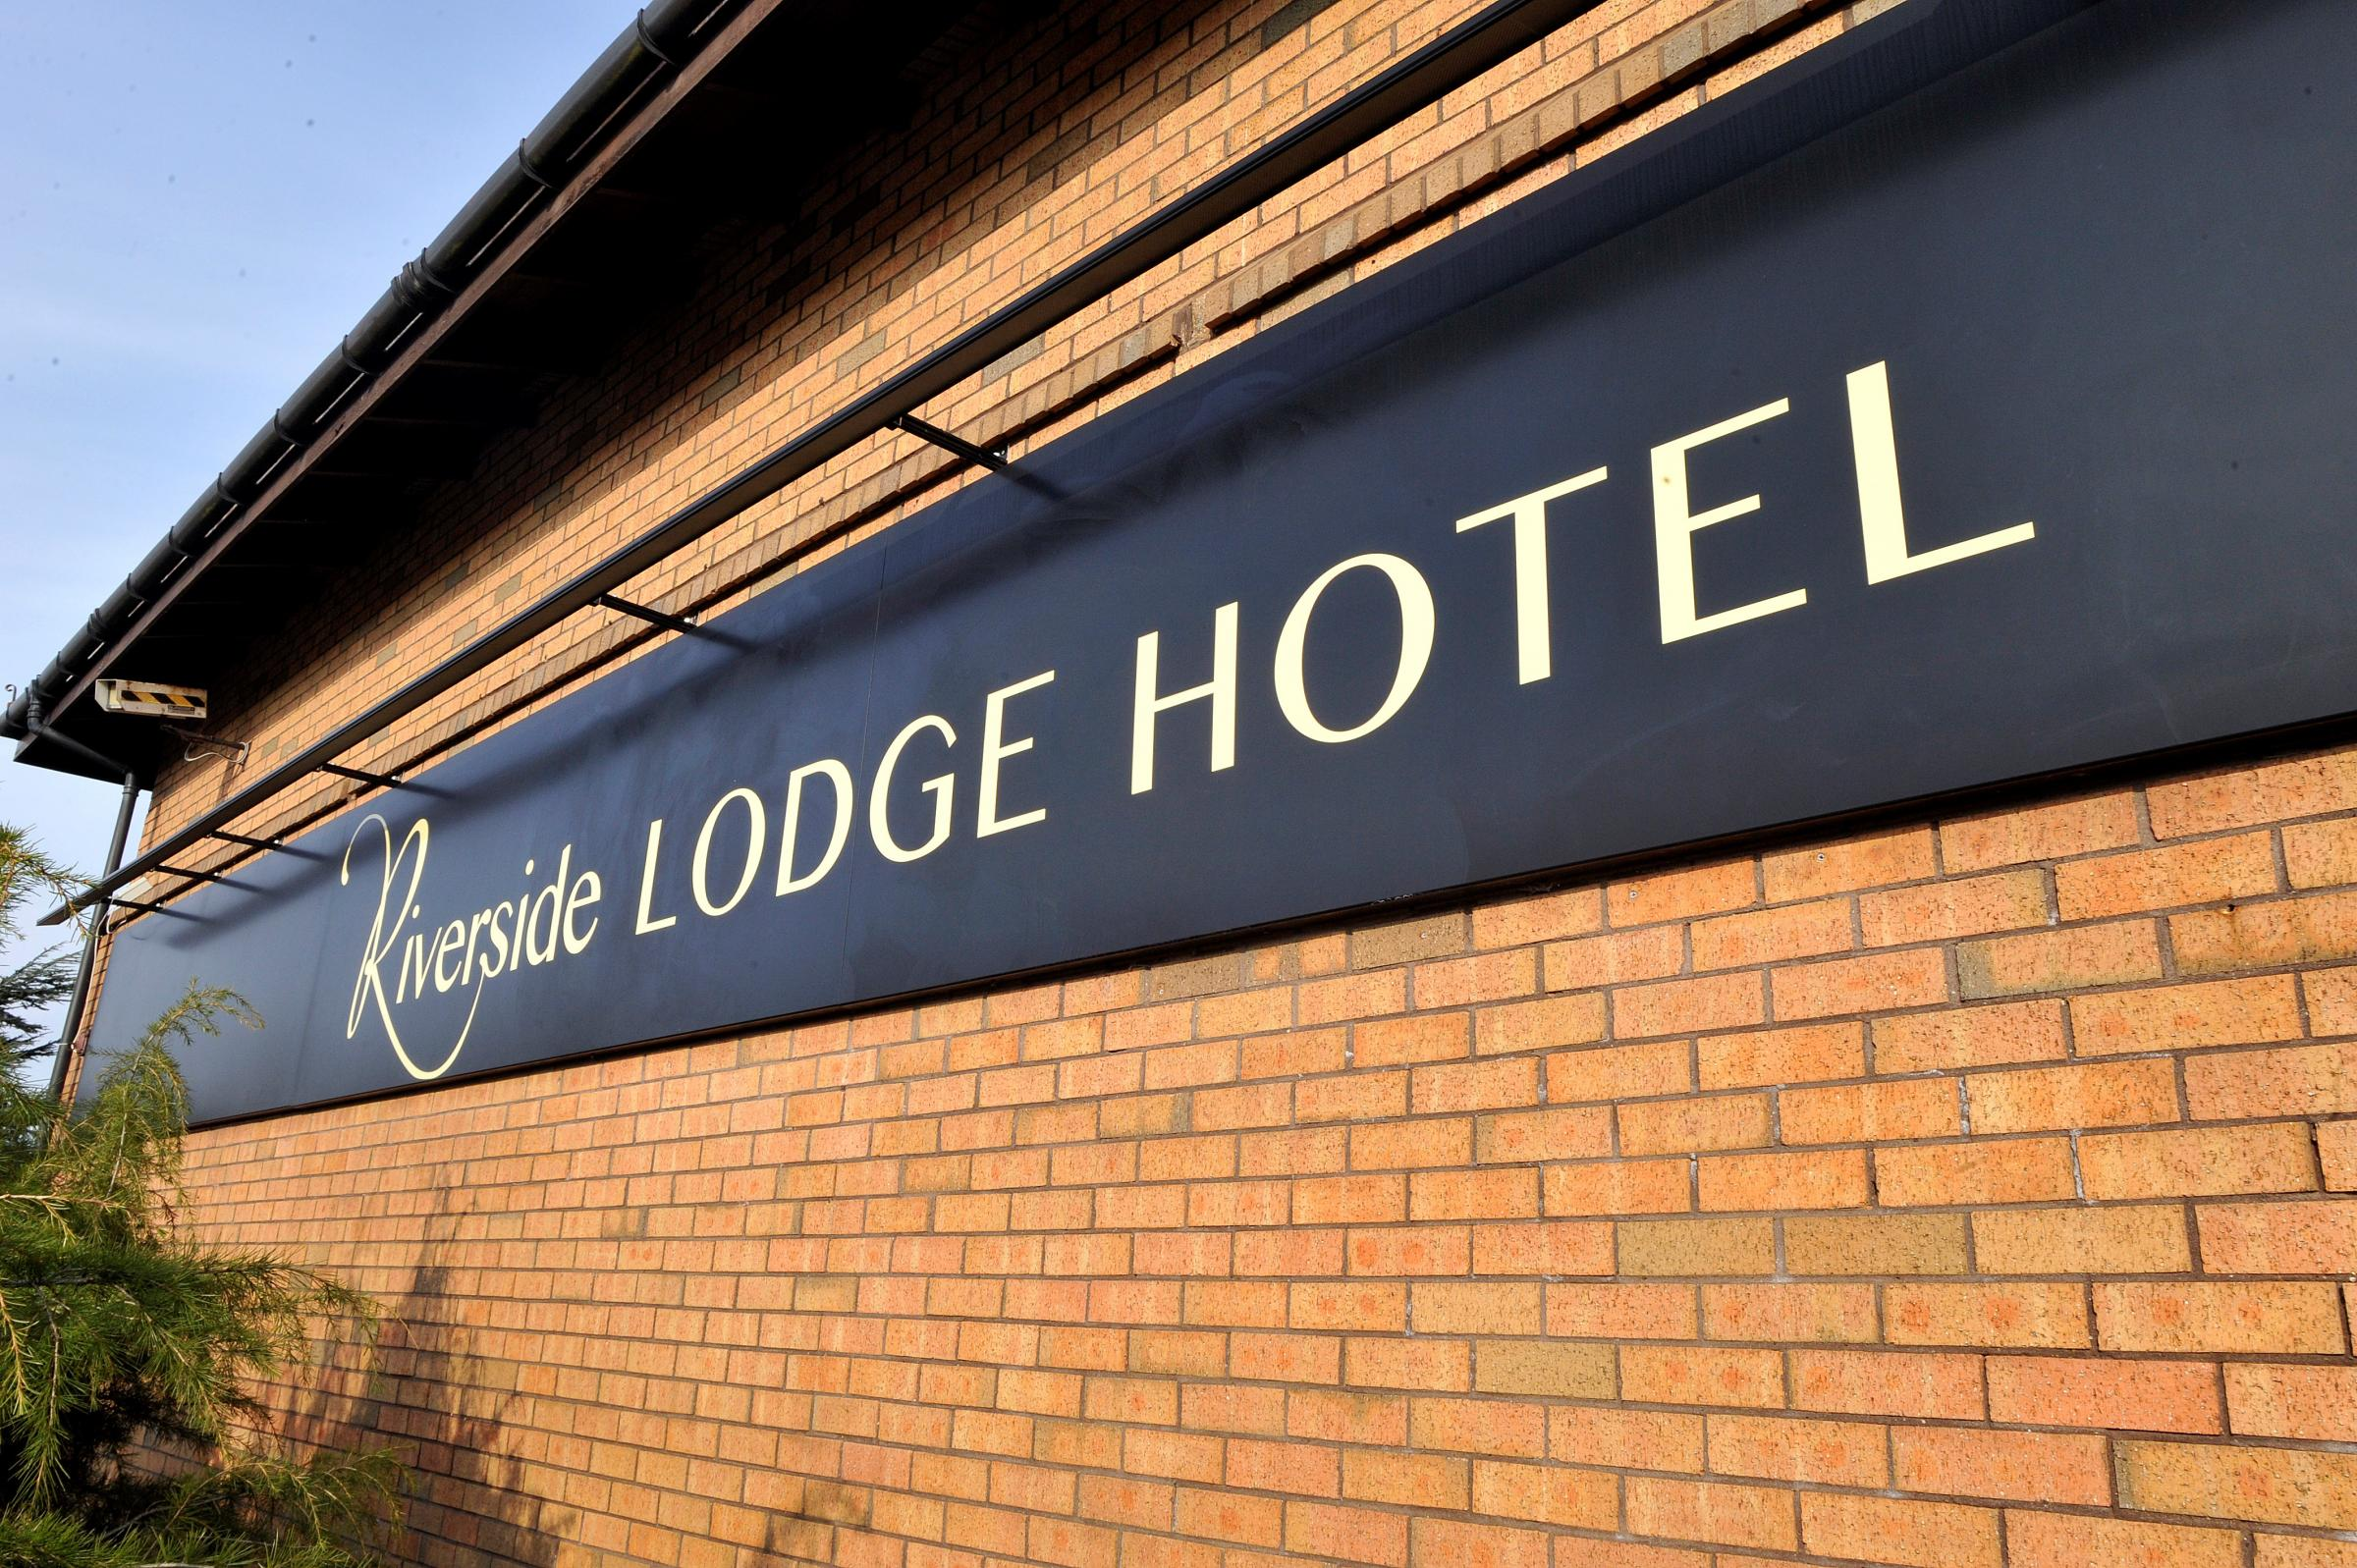 Hotel now rebranded as Riverside Lodge